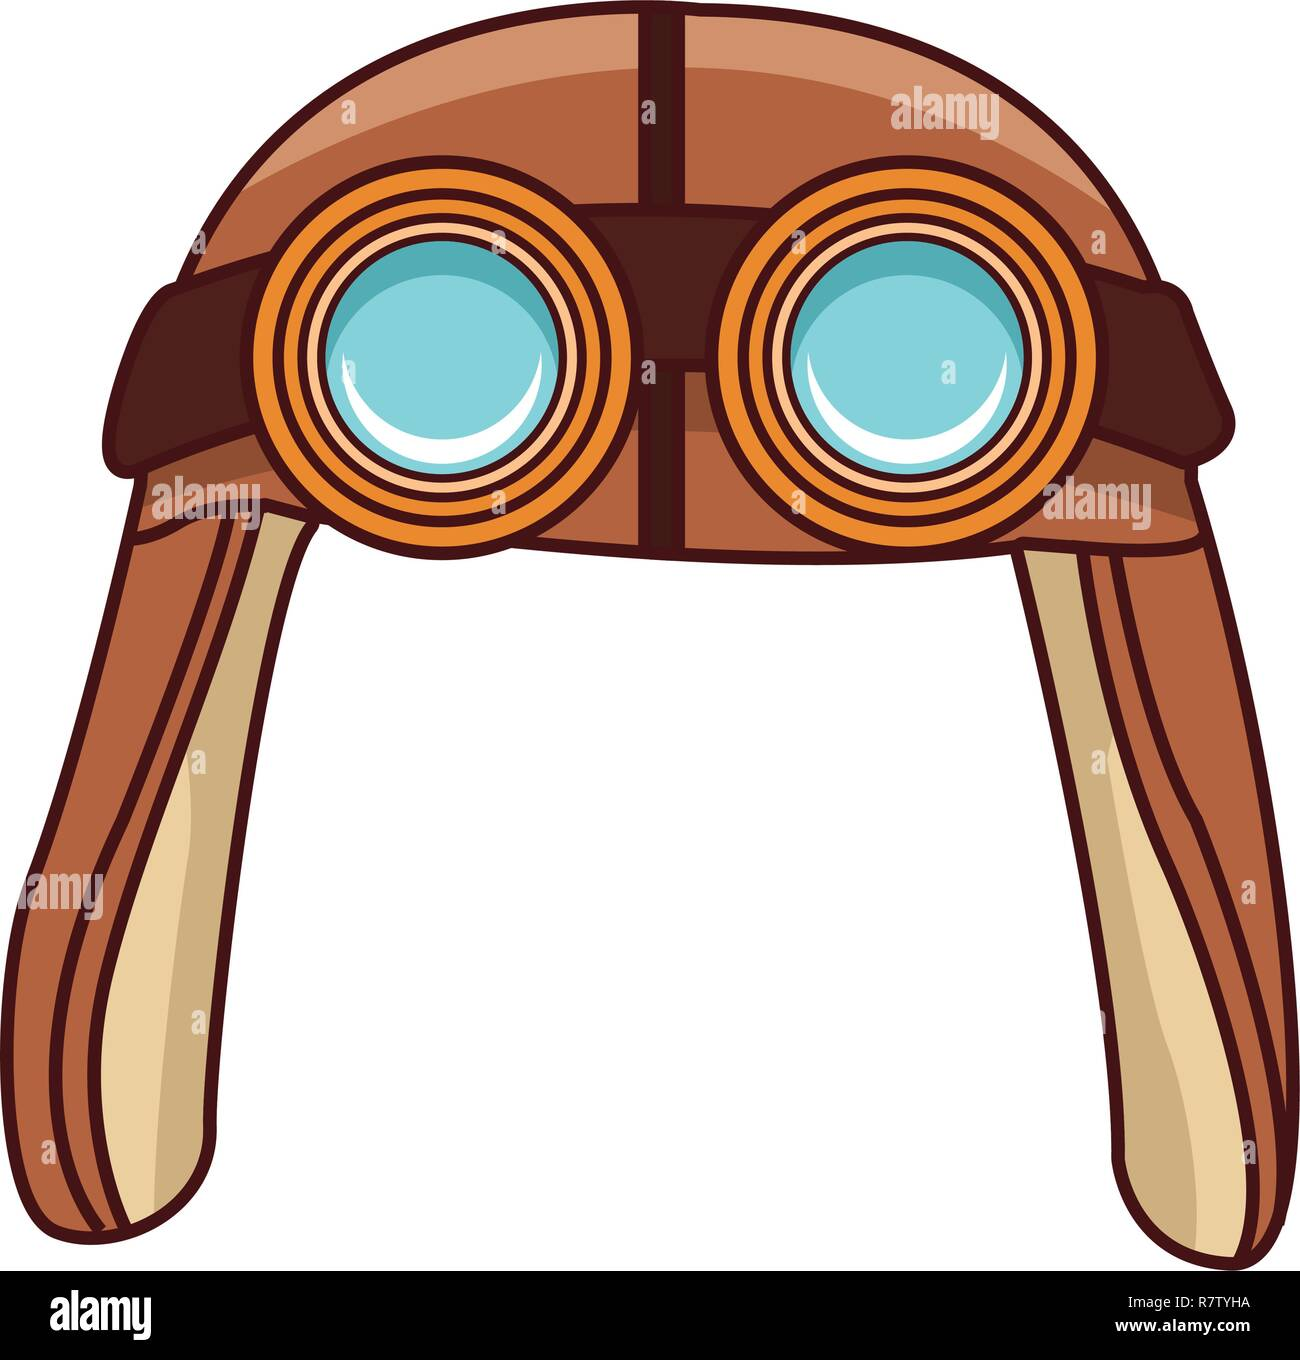 Pilot Helmet Stock Photos Amp Pilot Helmet Stock Images Alamy